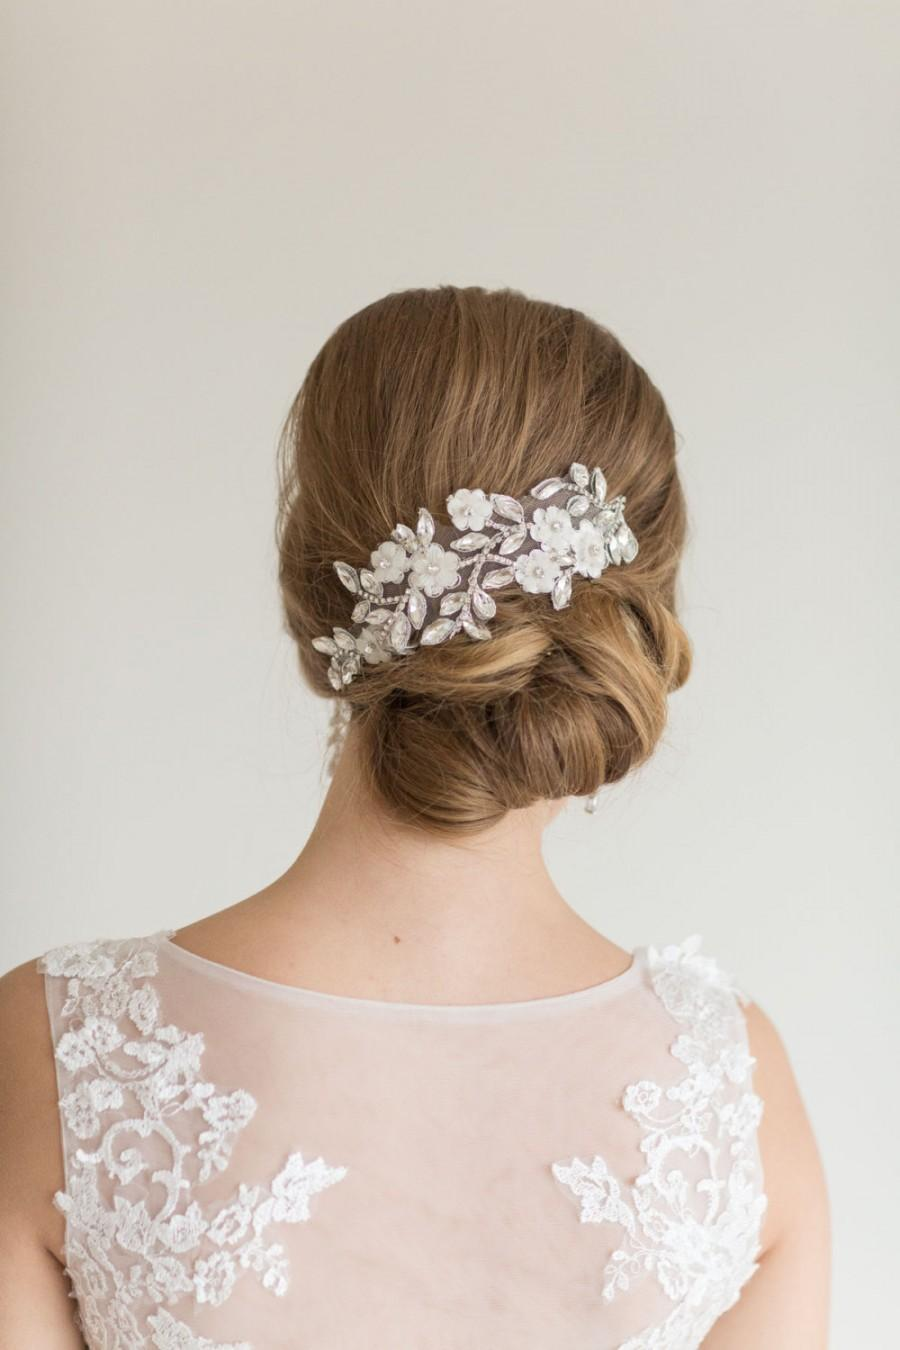 Lace Headpiece Bridal Crystal And Hair Clips Wedding Accessory